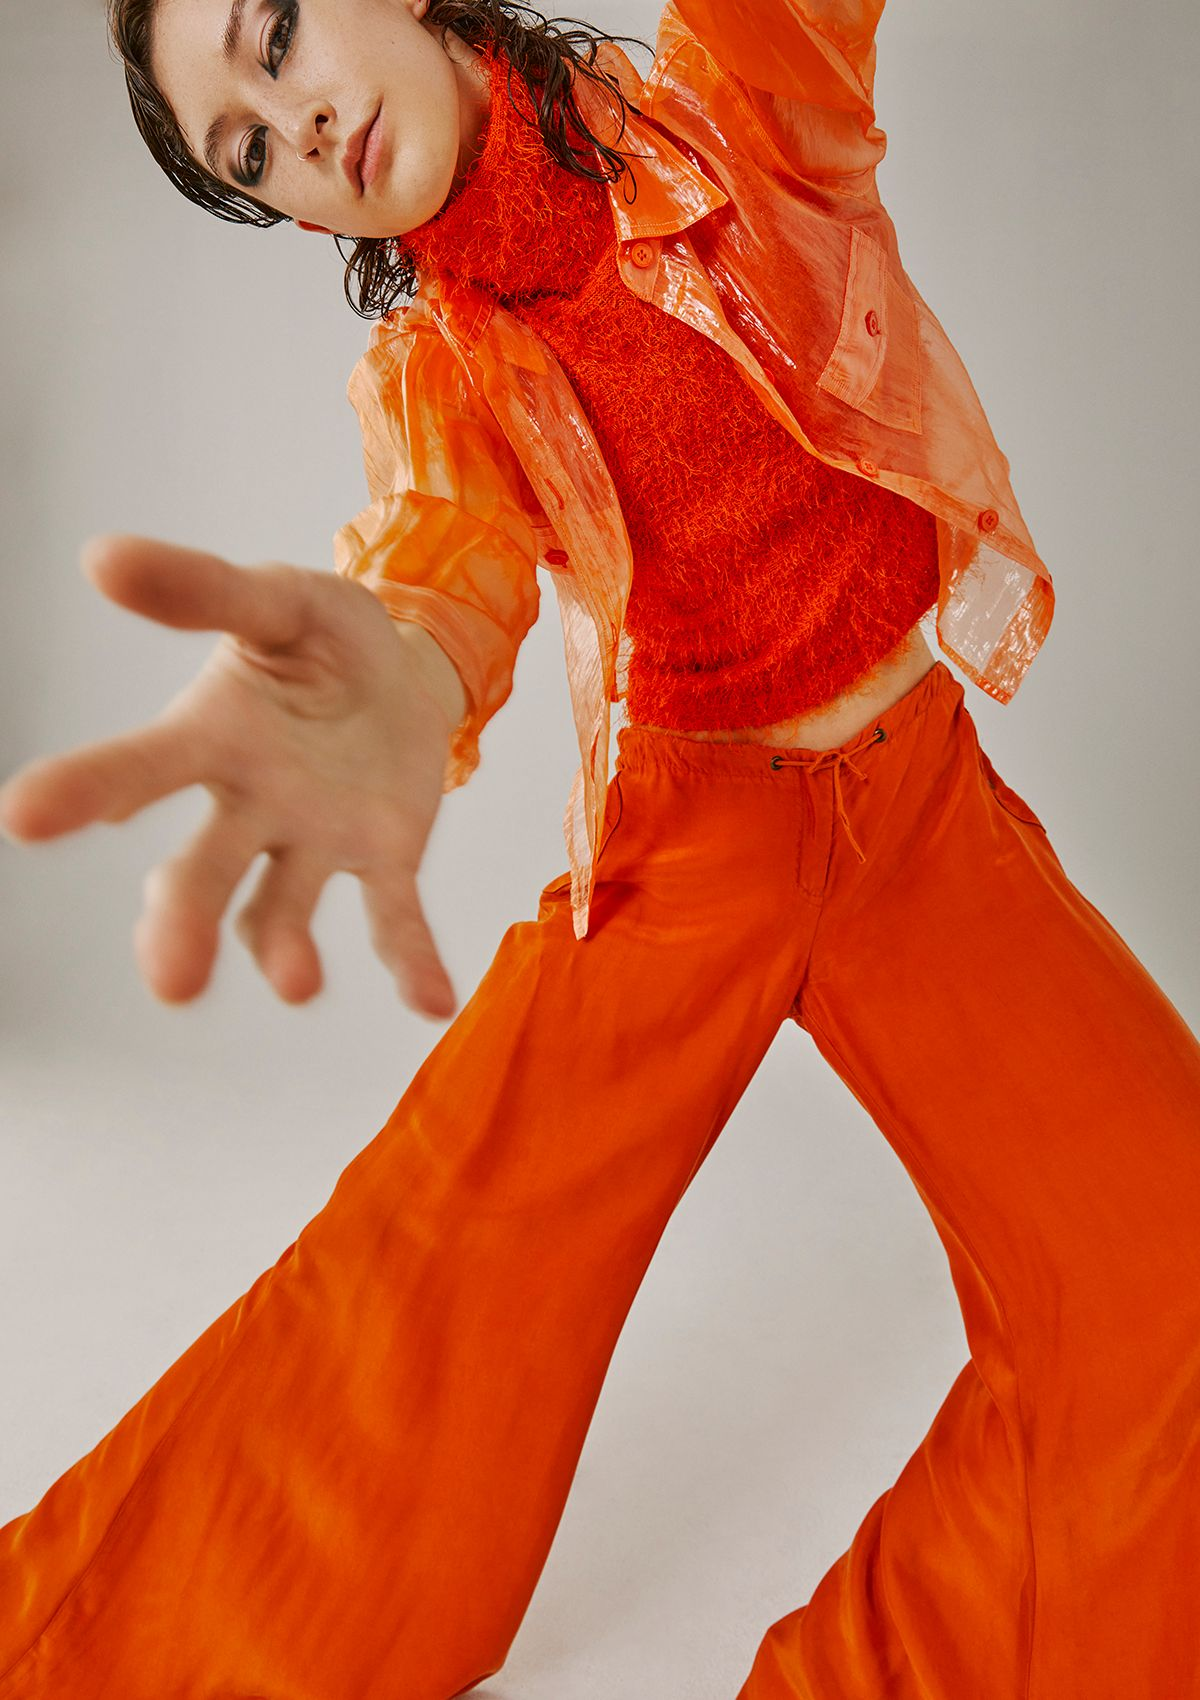 female model all dressed in orange extending hand in front of camera photographed by Kelly Jacob for Editorial for Contributor Magazine